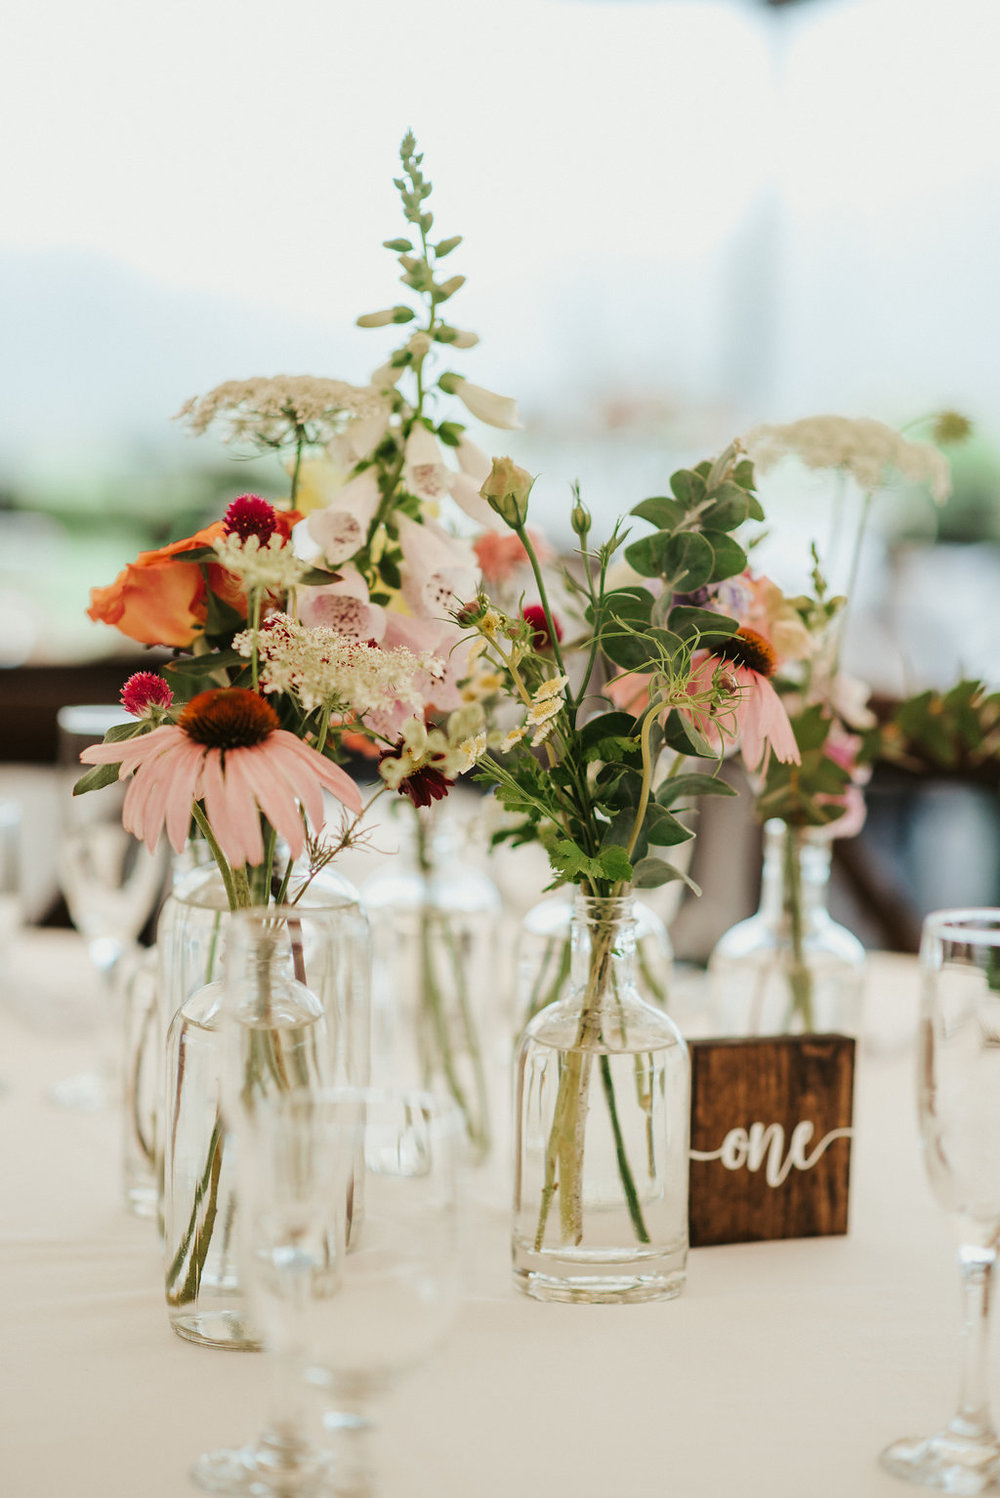 Watershed_Floral_Summer_Maine_Wedding_072818_R-17.jpg